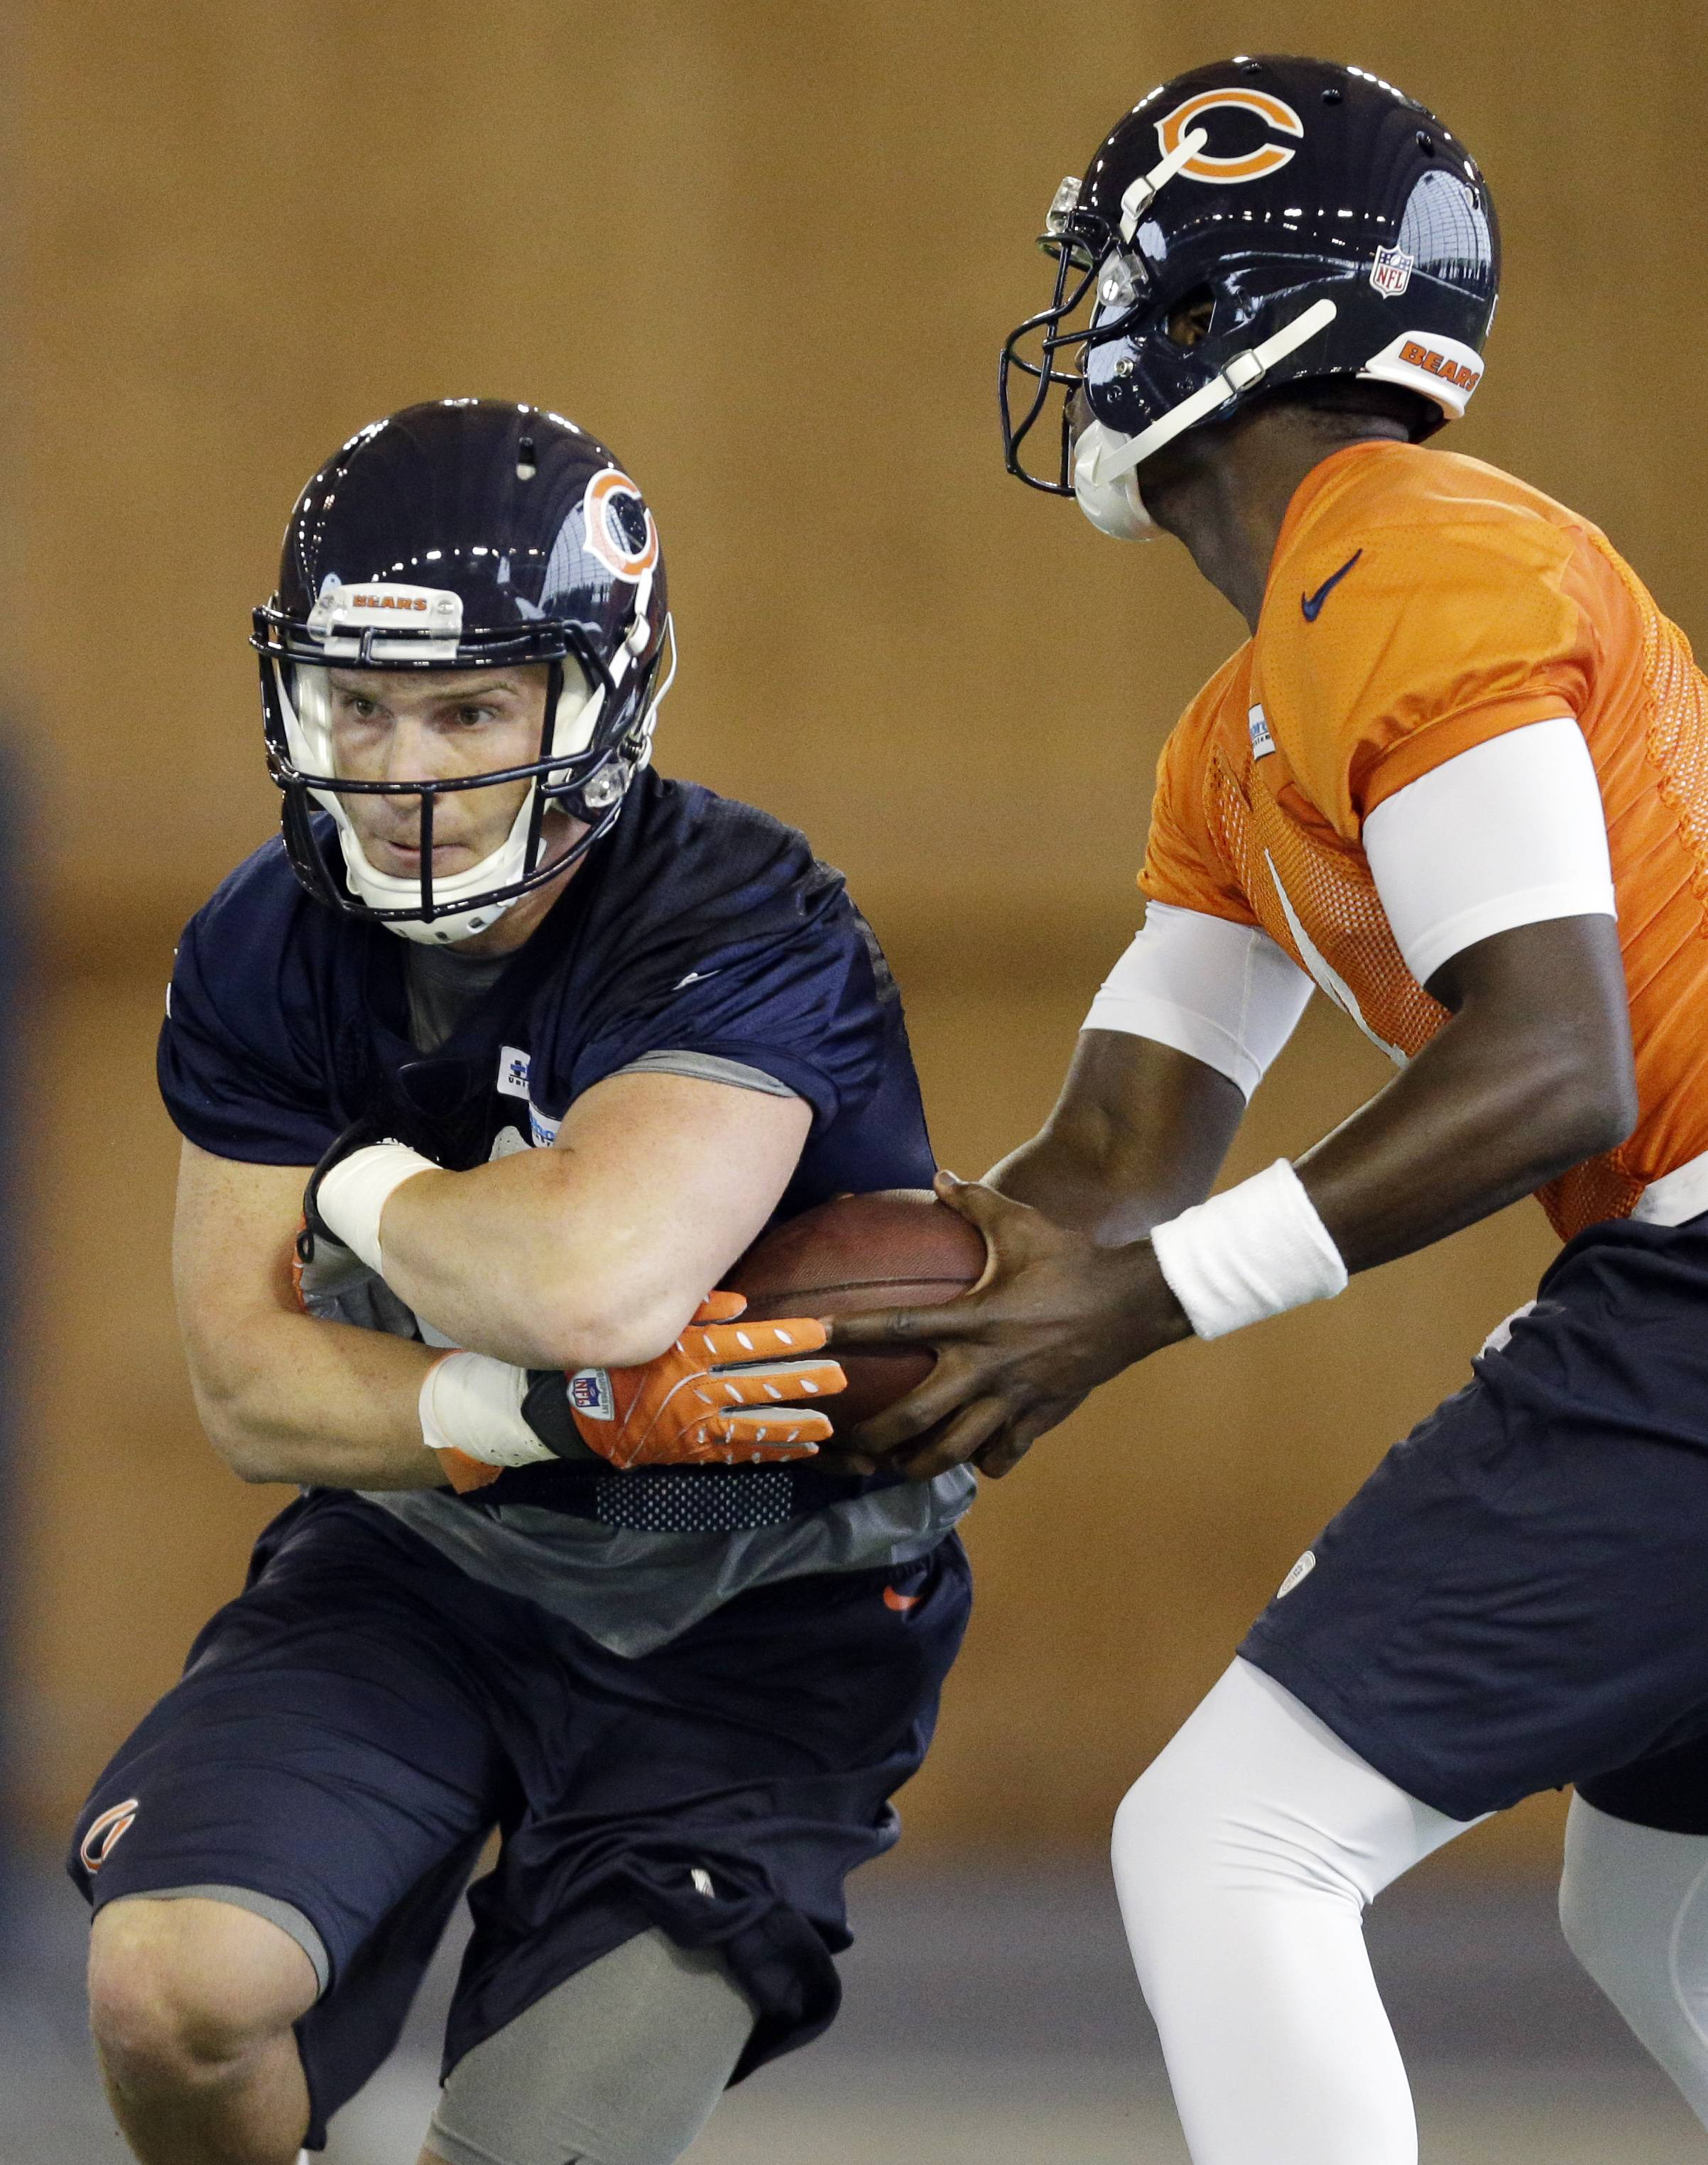 Chicago Bears quarterback Jerrod Johnson, right, fakes the handoff to running back Jordan Lynch, left, takes the handoff during the team's NFL football rookie camp Friday, May 16, 2014, in Lake Forest, Ill.